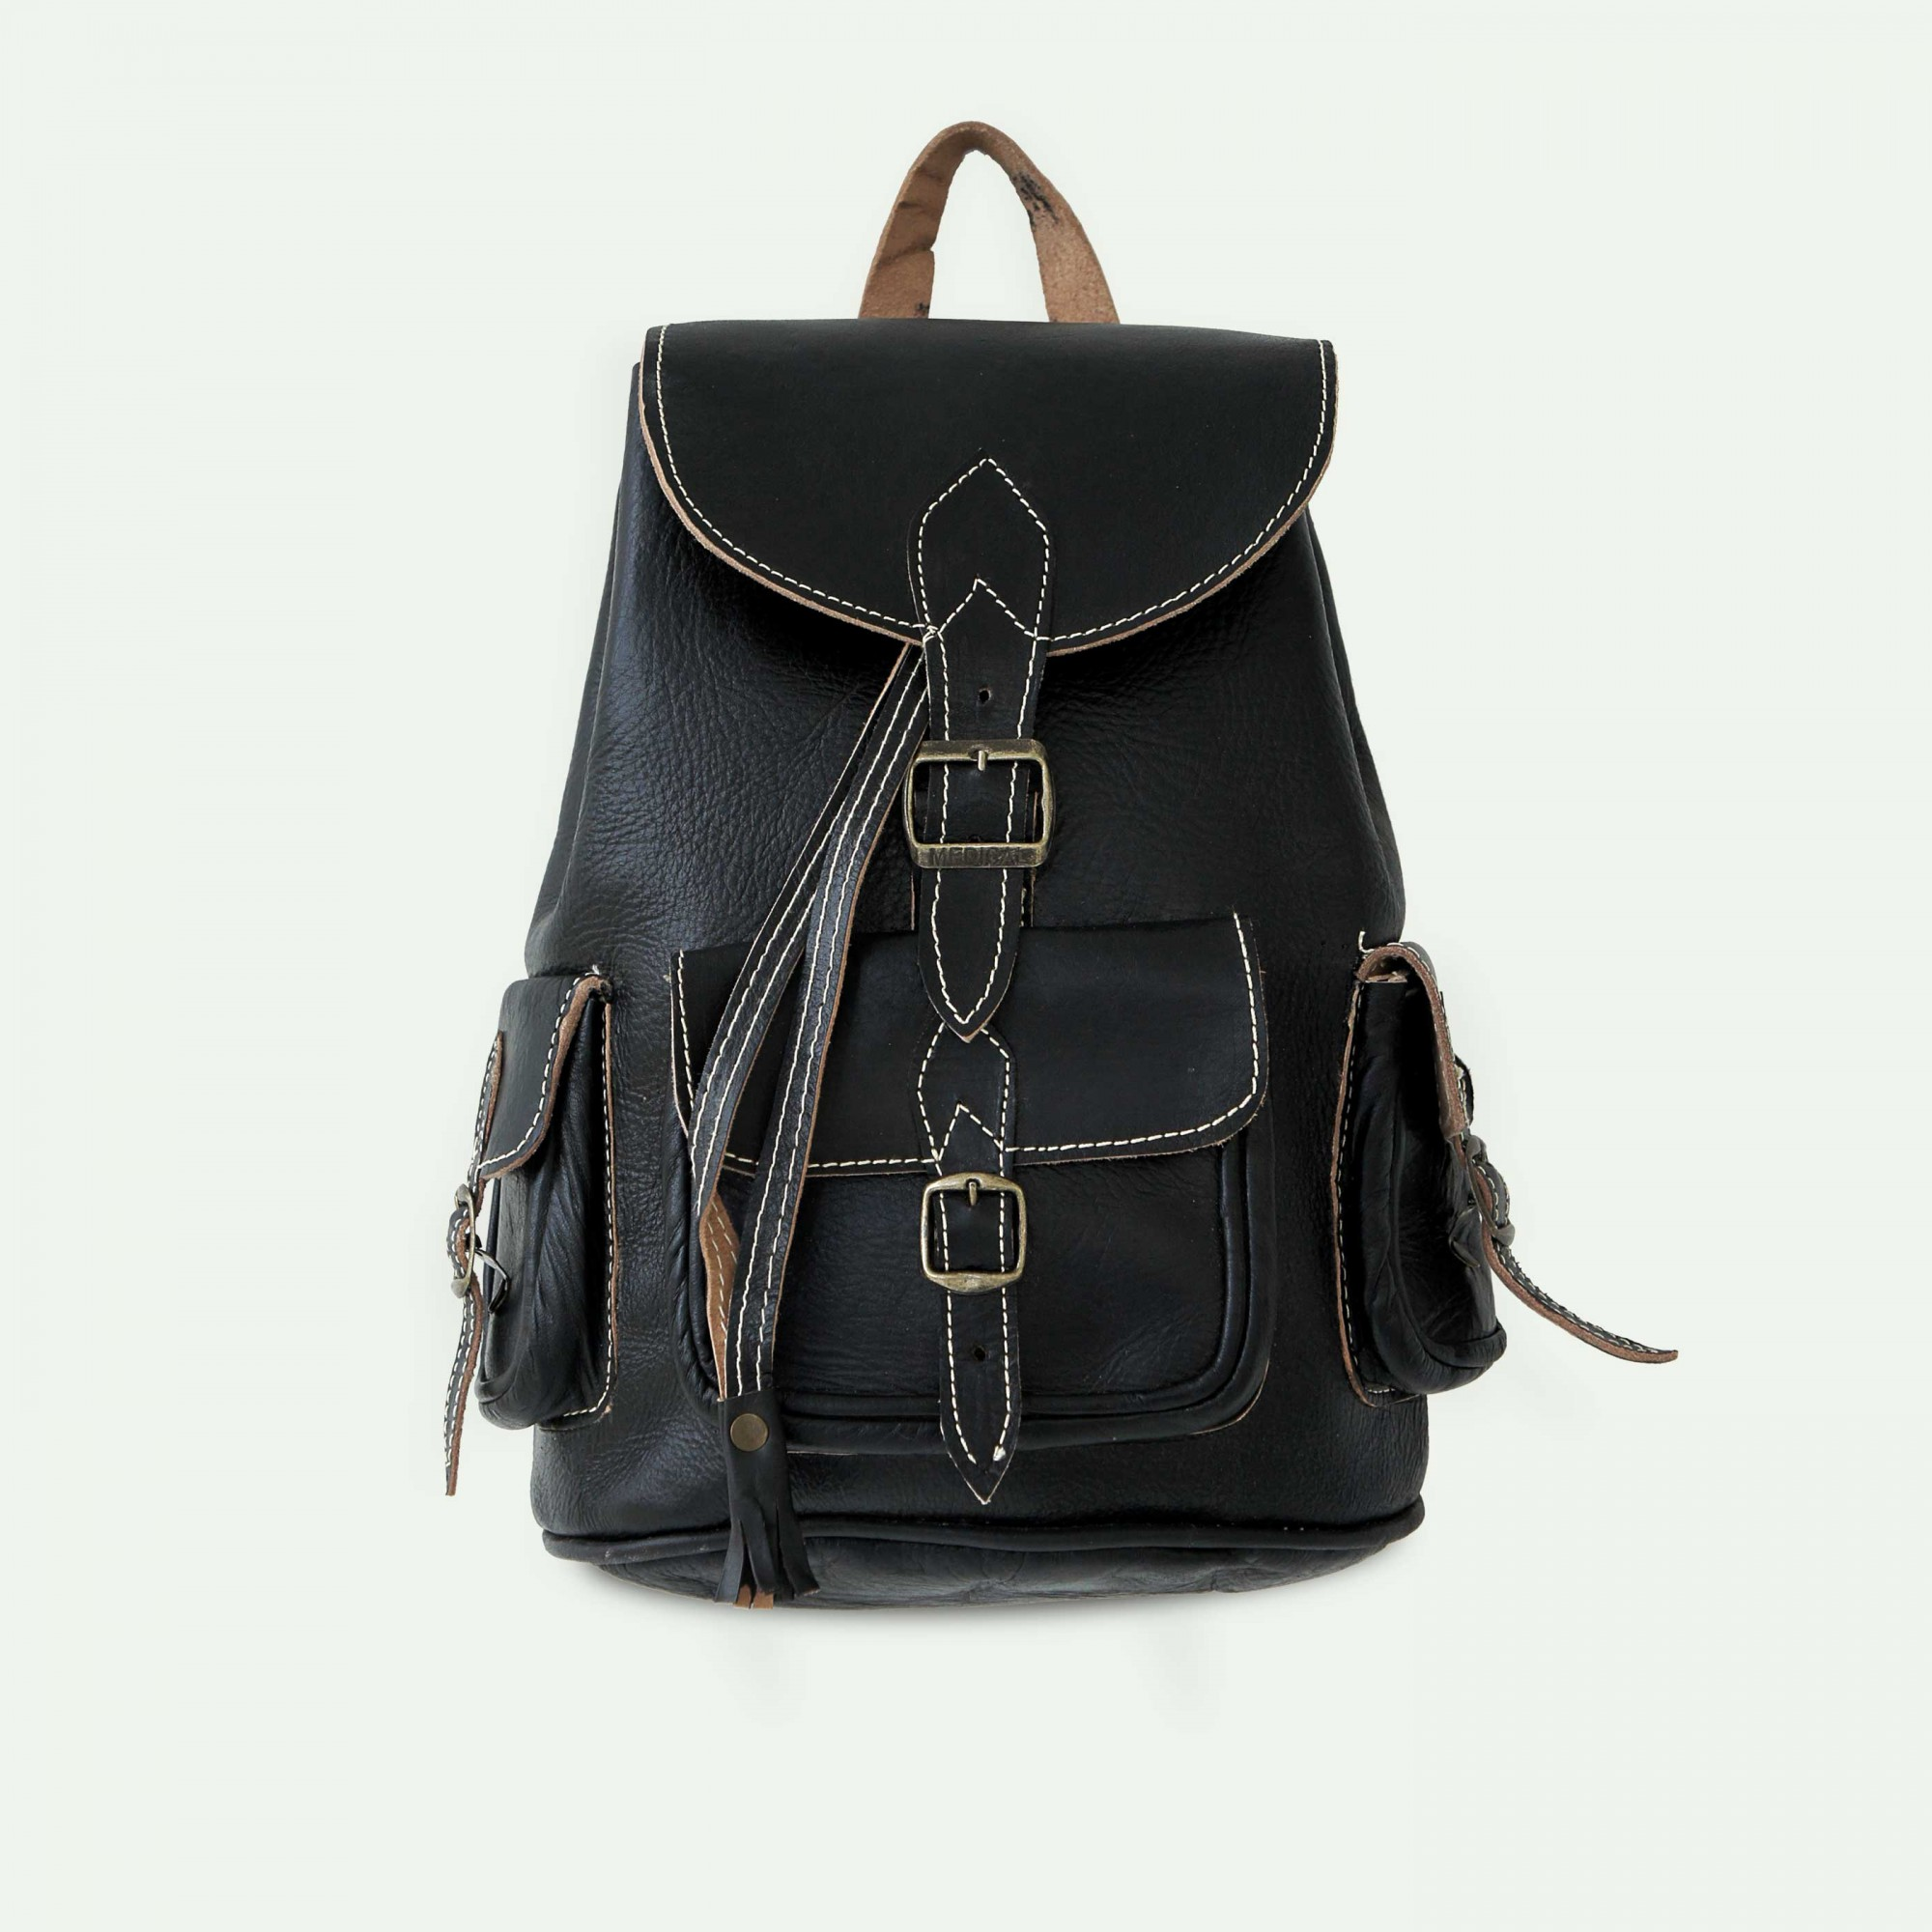 ccae3b0c505 Farfar: Backpack